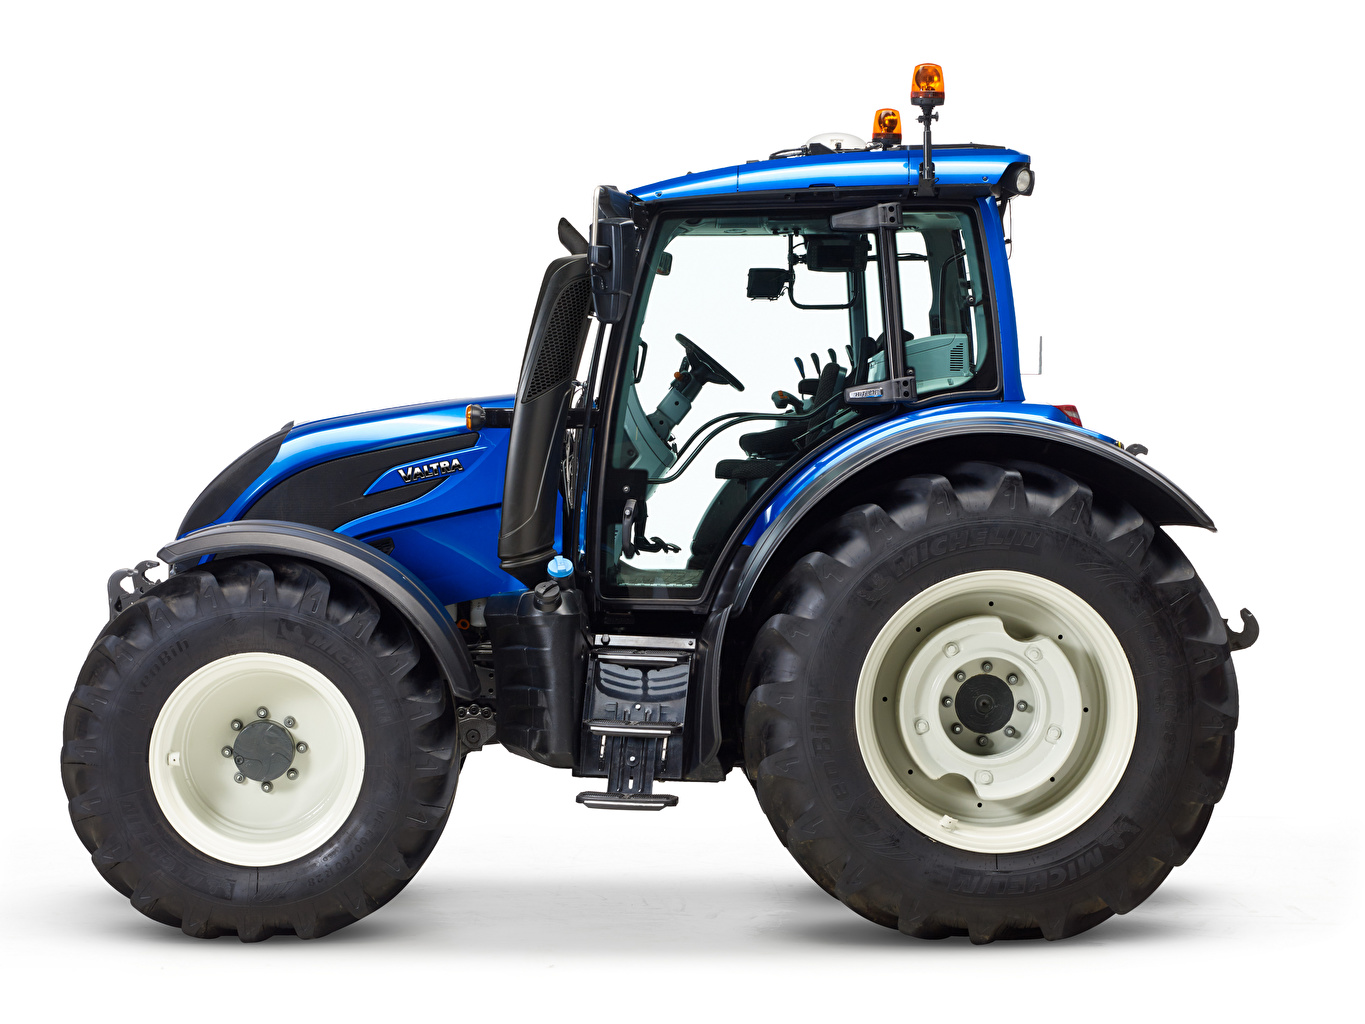 Picture Tractor Valtra N174, 2015 Blue Side White background tractors